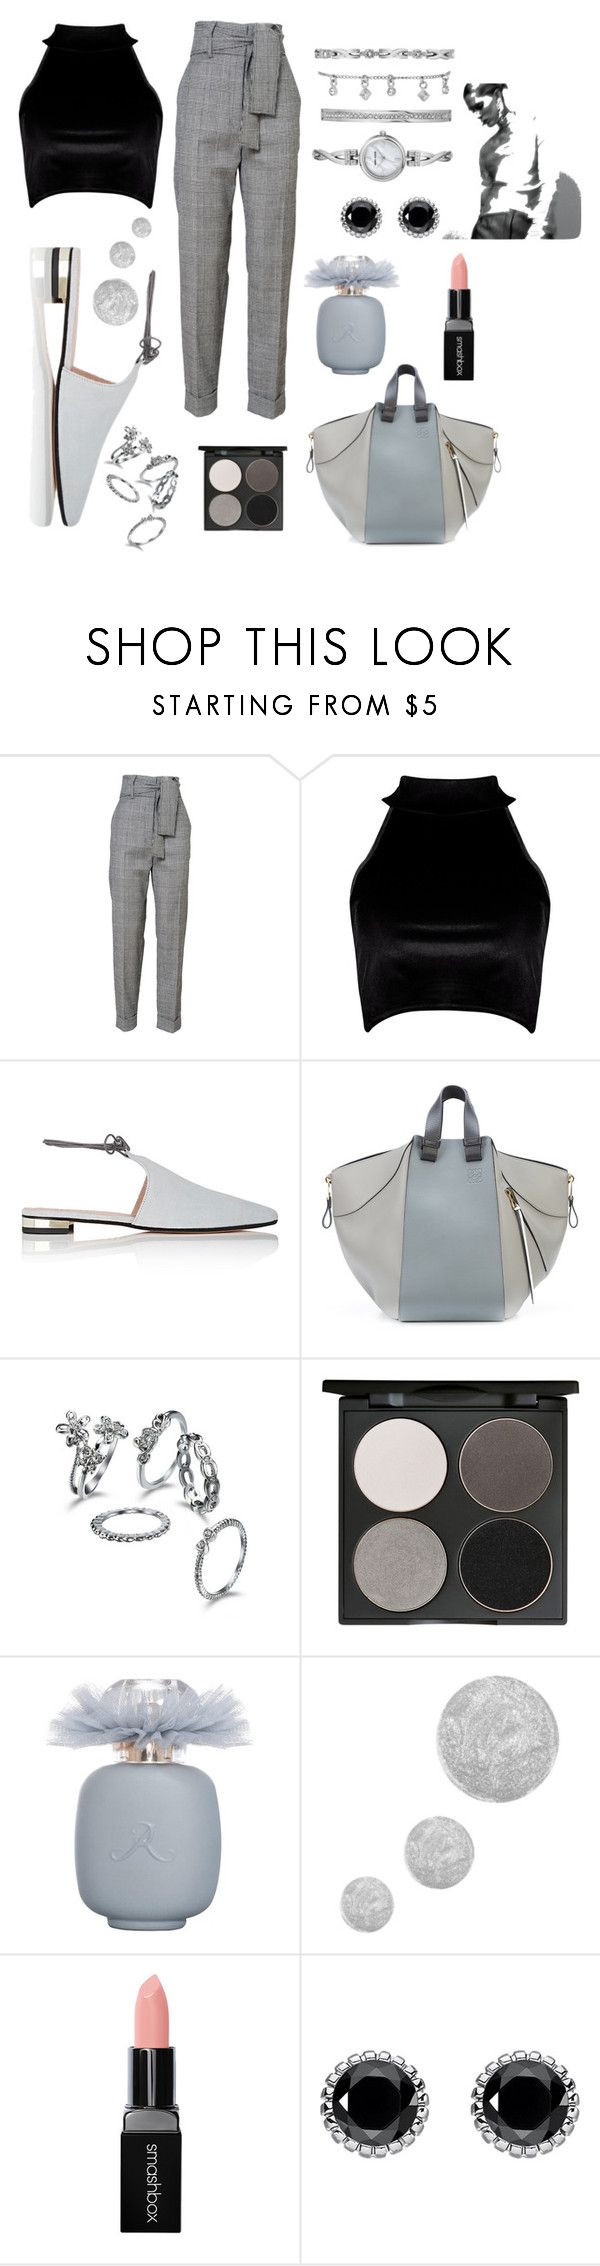 """Untitled #337"" by inesgenebra on Polyvore featuring Boohoo, Barneys New York, Loewe, Gorgeous Cosmetics, Topshop, Smashbox, Thomas Sabo and Anne Klein"